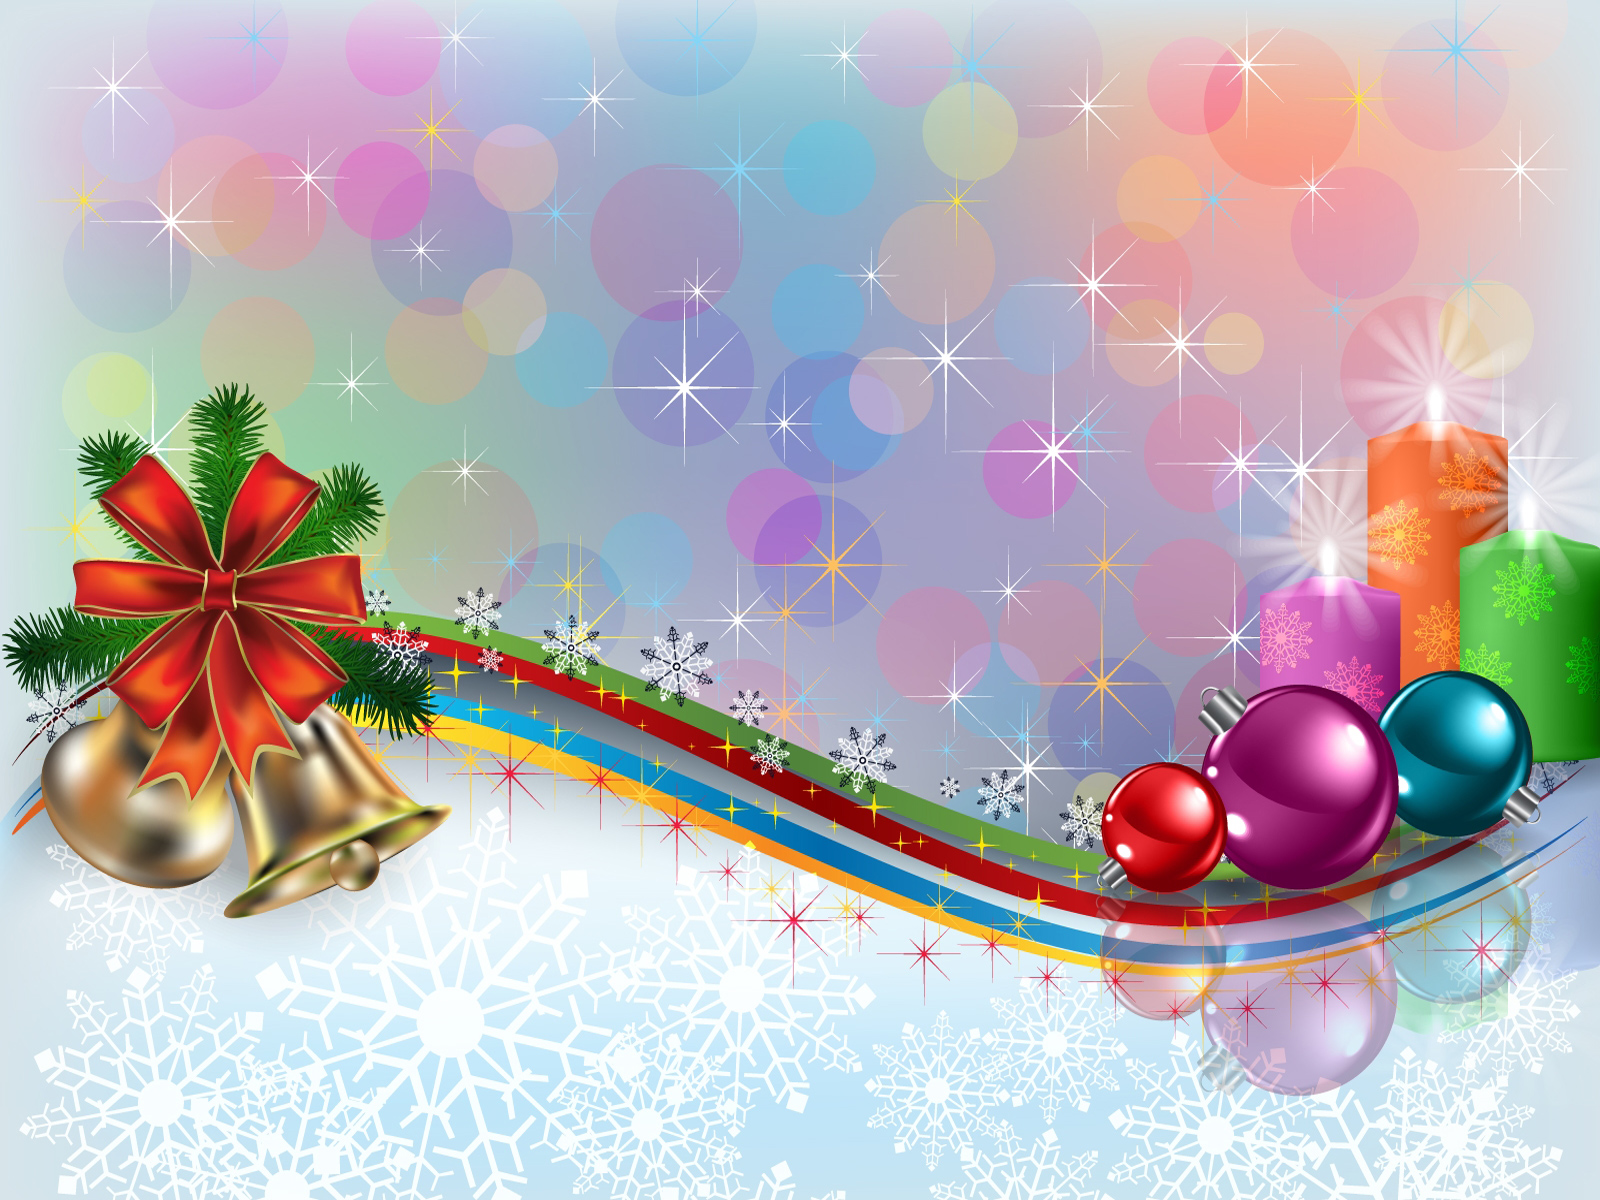 Beautiful Christmas Wallpapers Wallpaper - WallpaperSafari